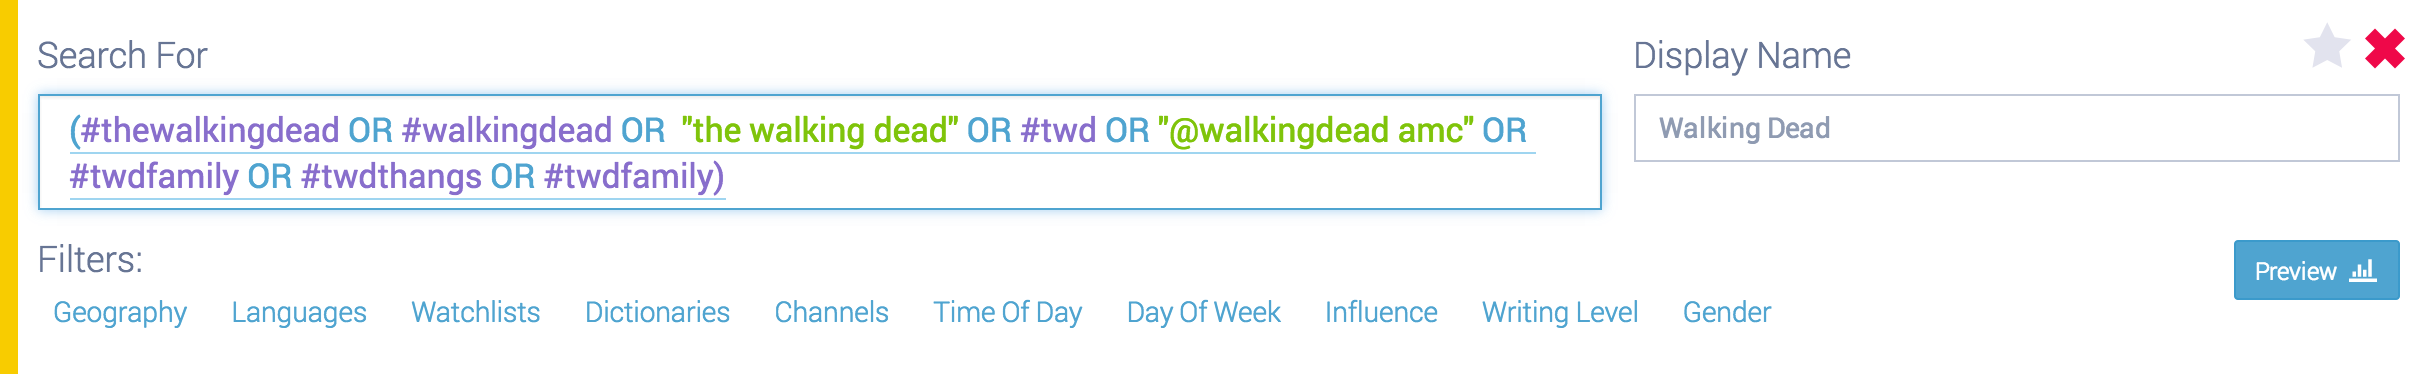 Example query including related hashtags